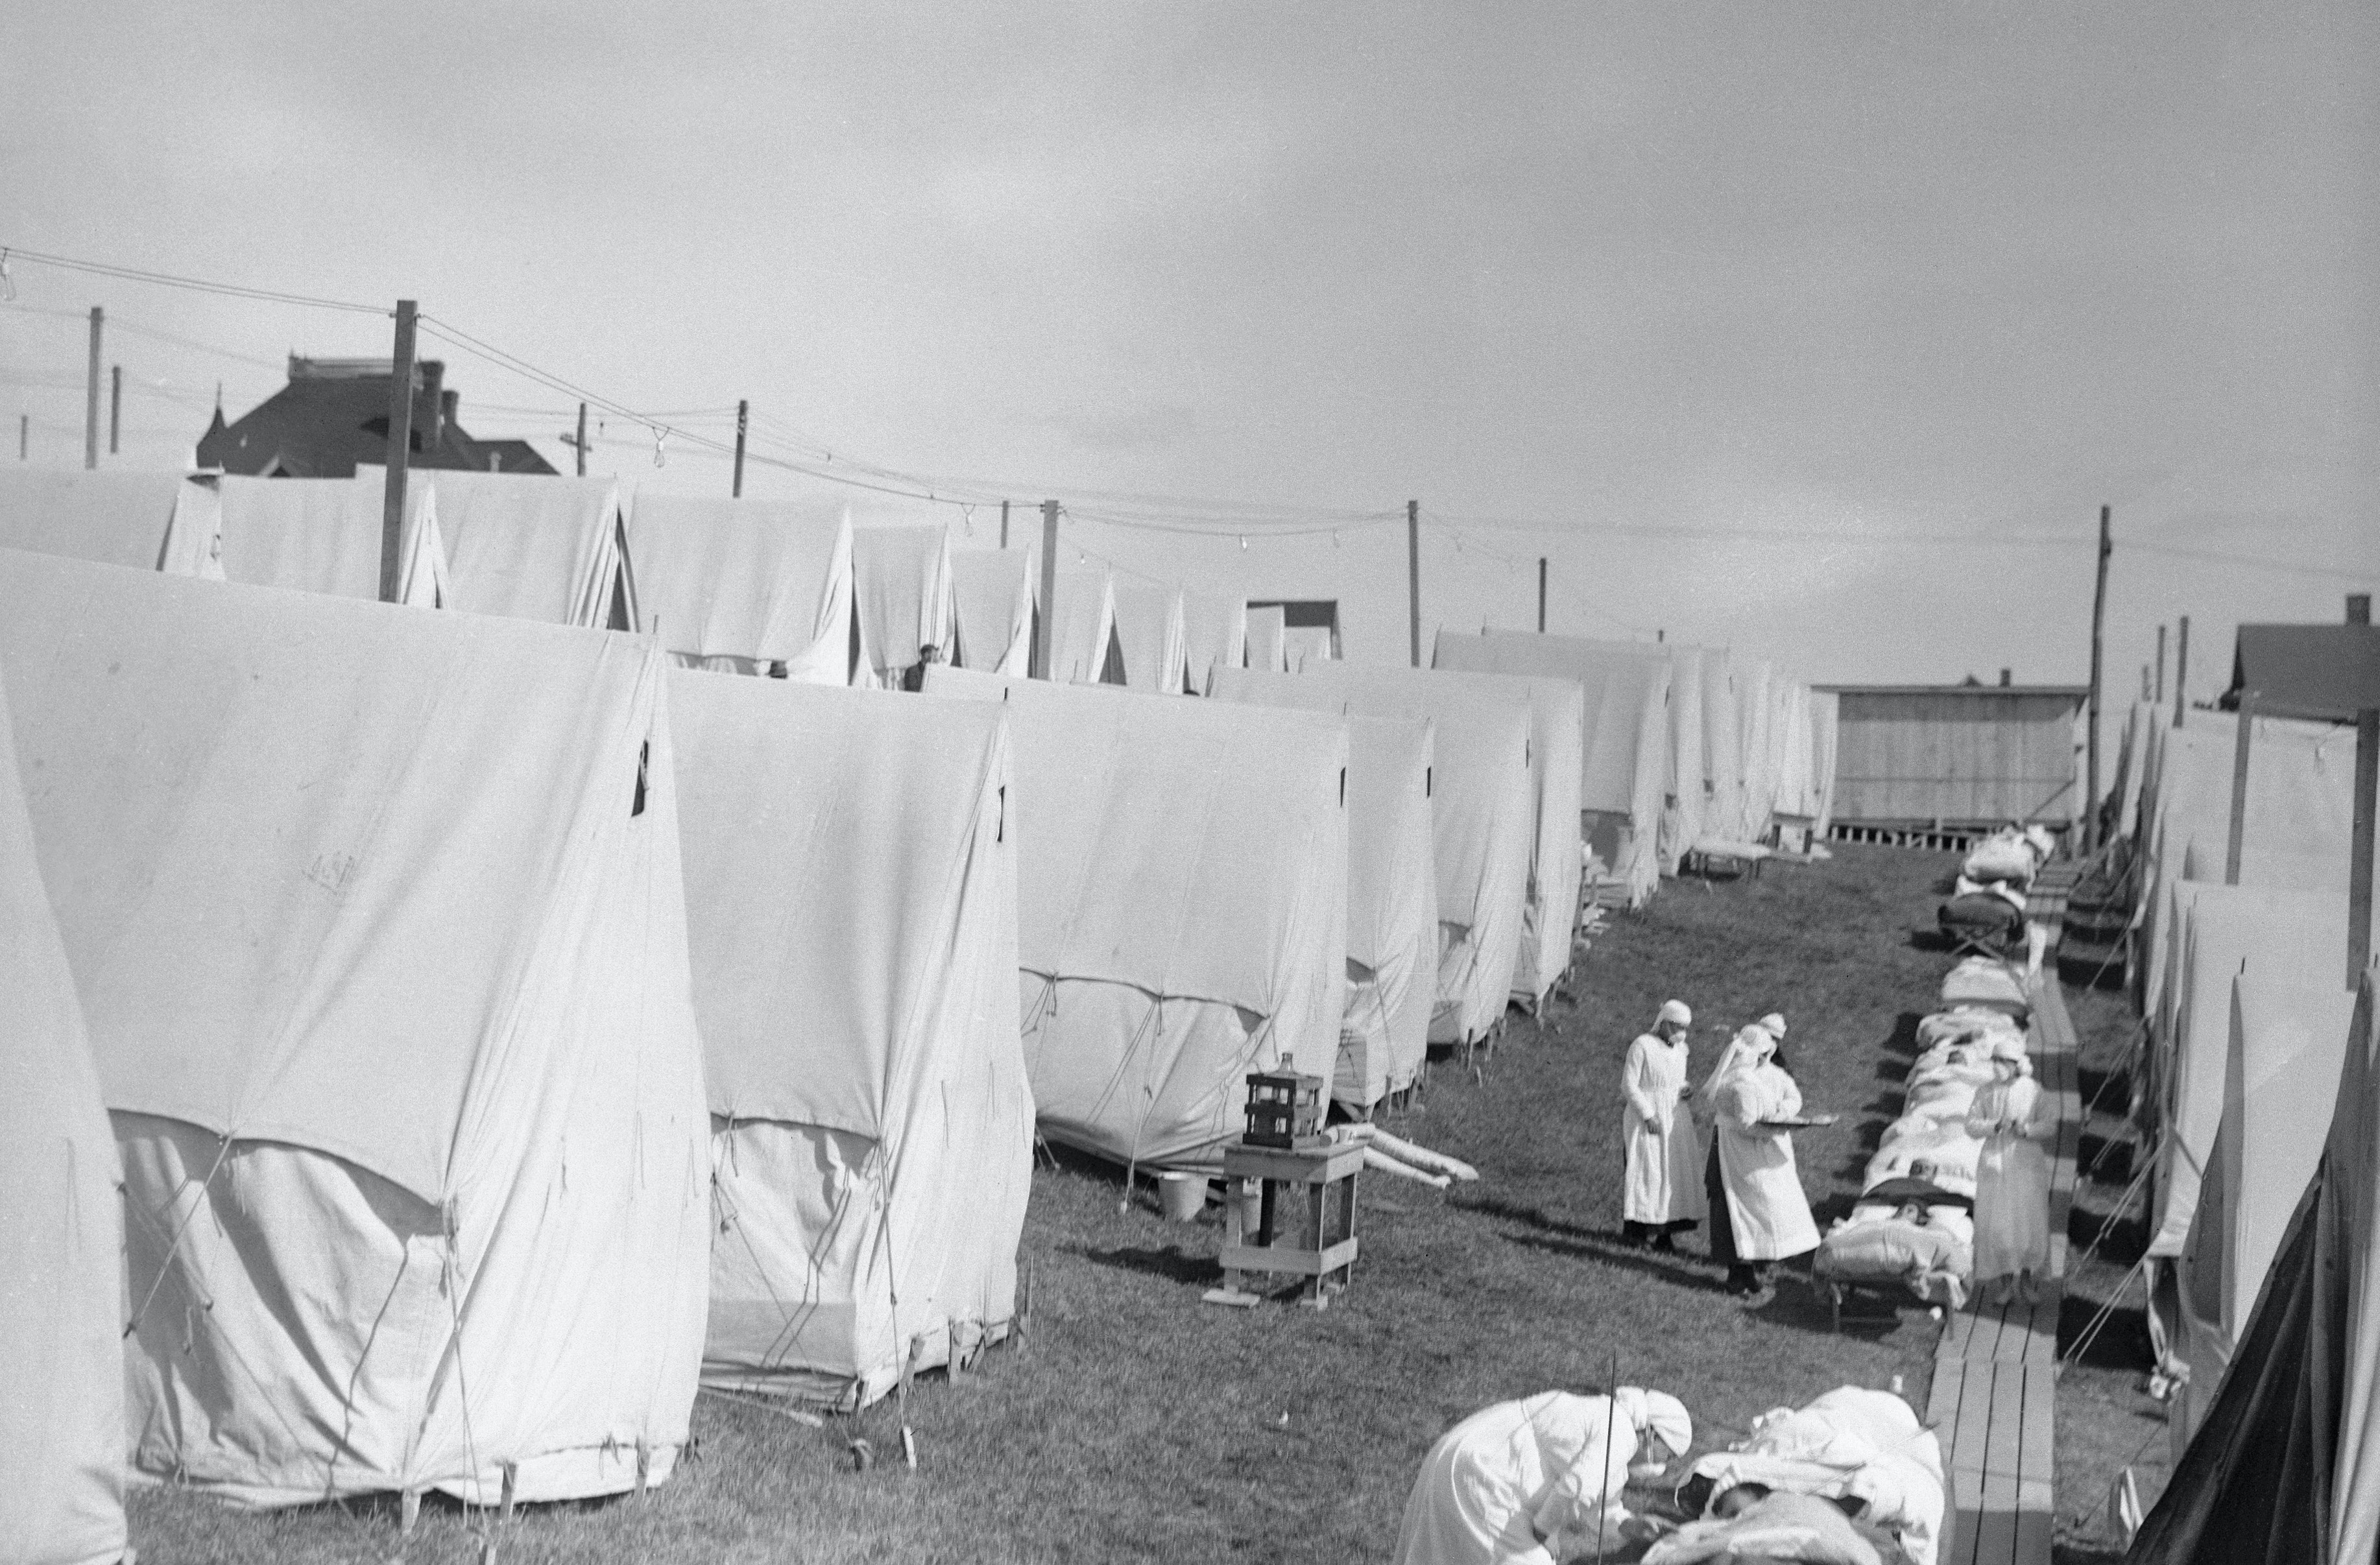 Patients lie on outdoor beds at flu camp filled with rows of tents.